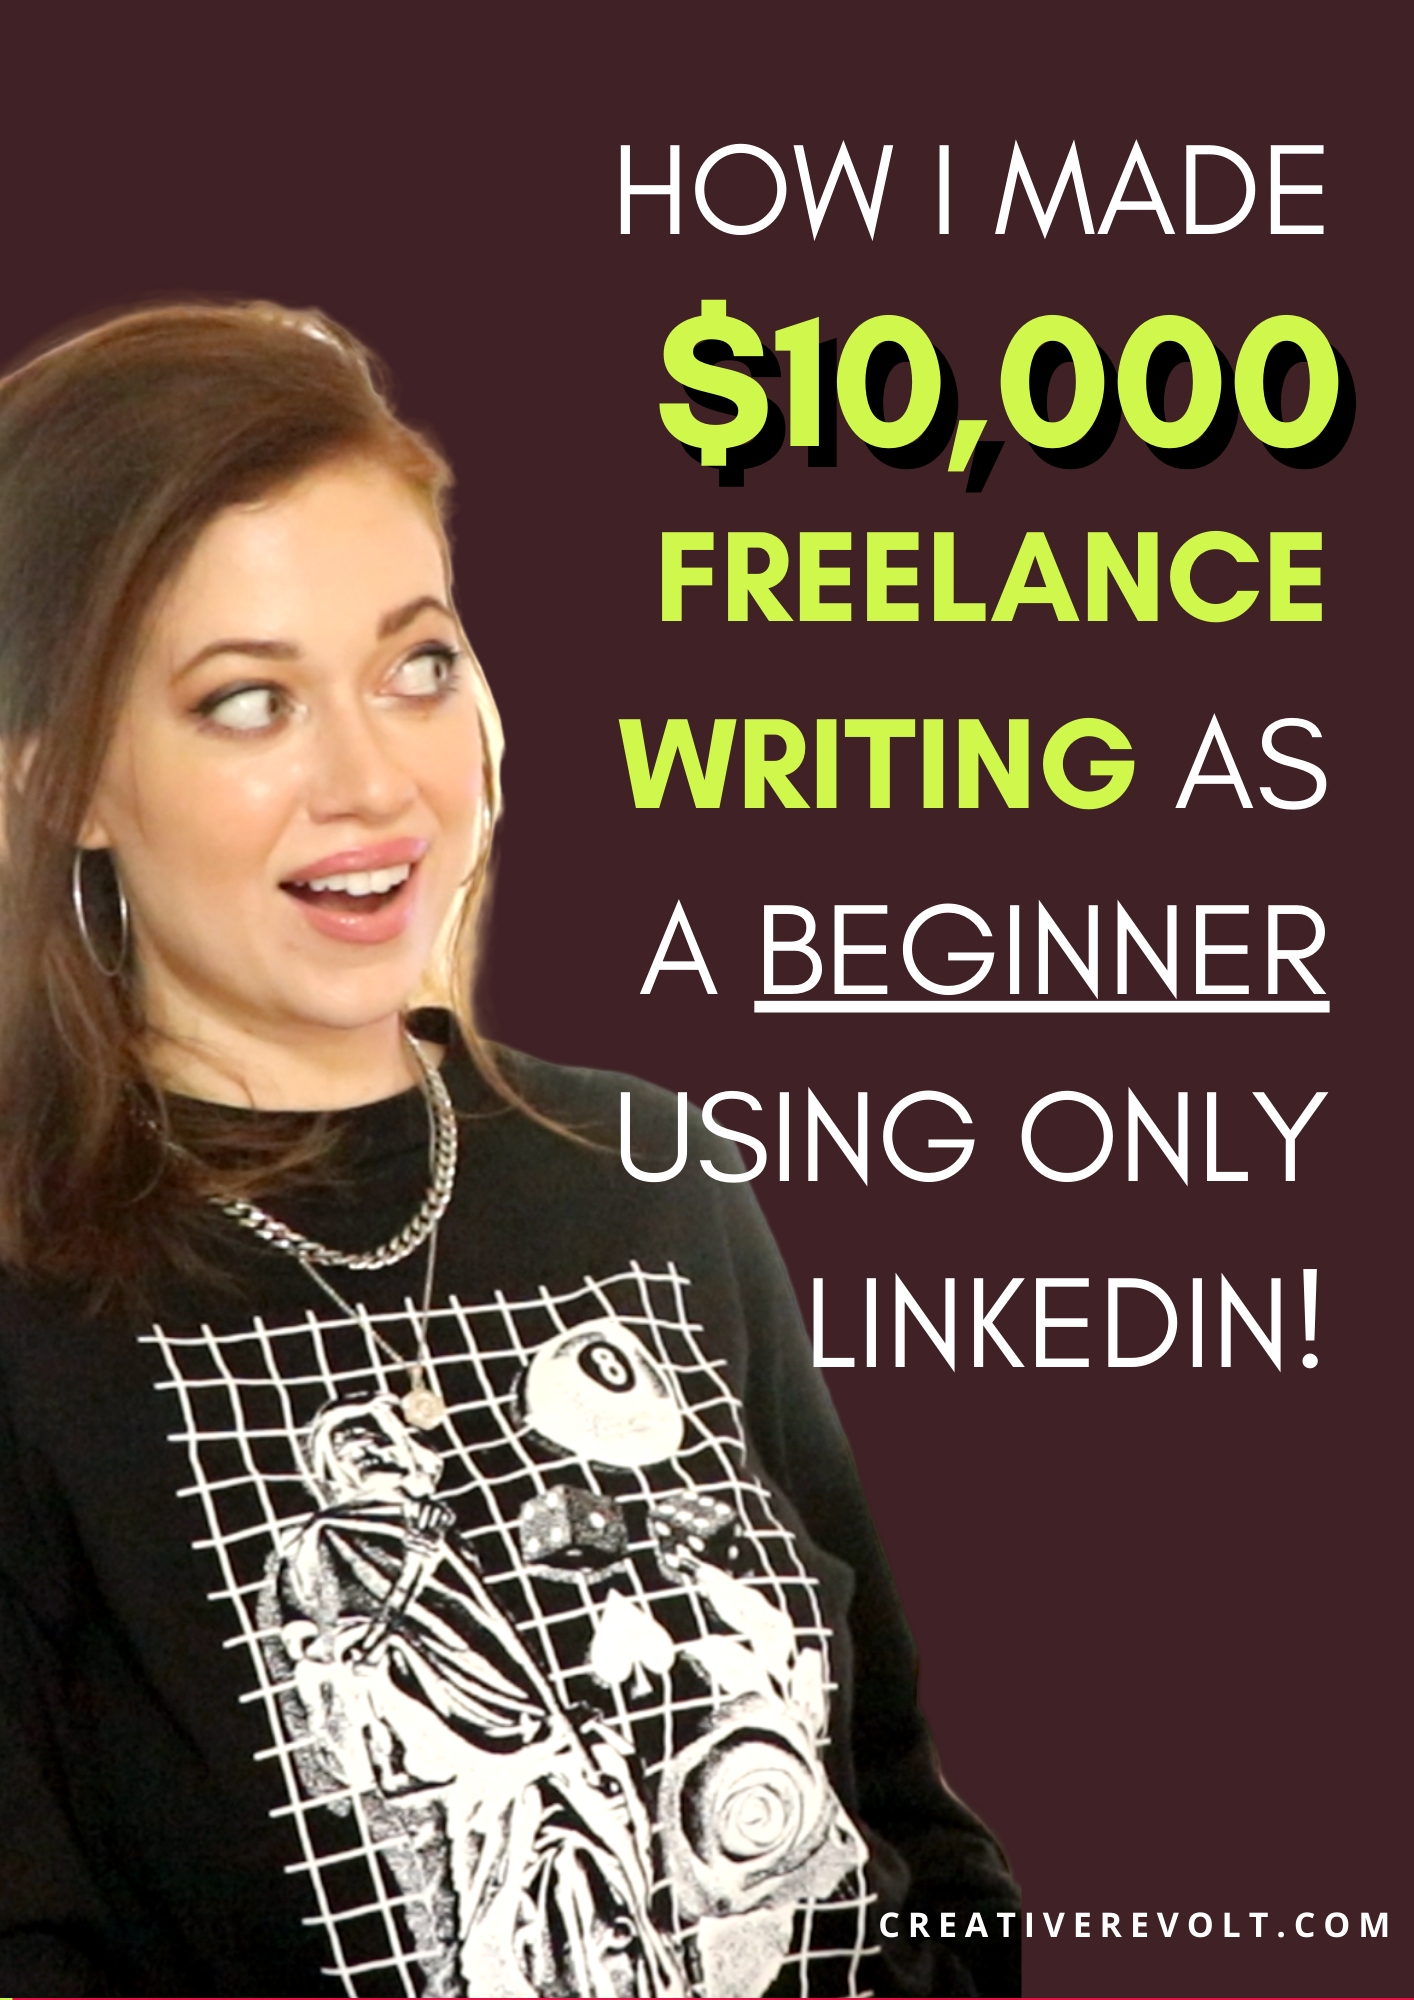 Get freelance writing jobs on LinkedIn like CRAZY using this one powerful method that requires ZERO PITCHING and only takes a matter of minutes to set up. :) I'm sharing EXACTLY how I made $10K freelance writing as a direct result of LinkedIn in this crazy in-depth blog post ... with SCREENSHOTS! READ NOW orrrrr PIN FOR LATER :)            | freelance writing tips | freelance writing for beginners no experience | #freelancewriting #amwriting #freelancelife #writingtips